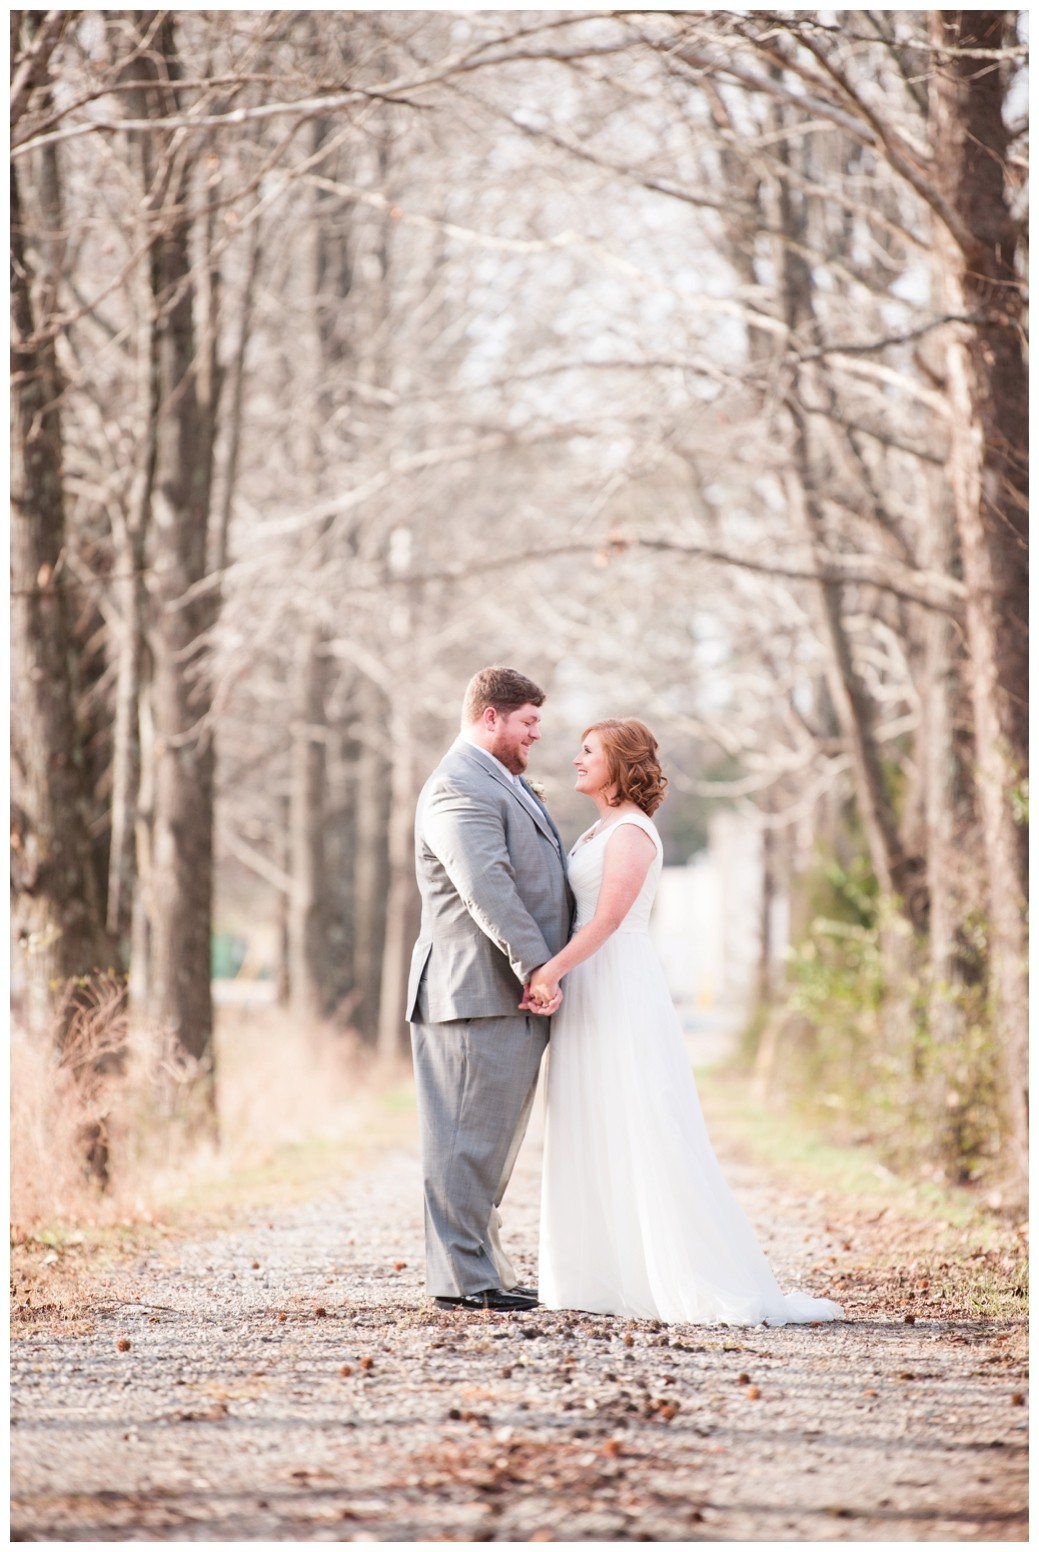 bride and groom on path looking at one another in winter